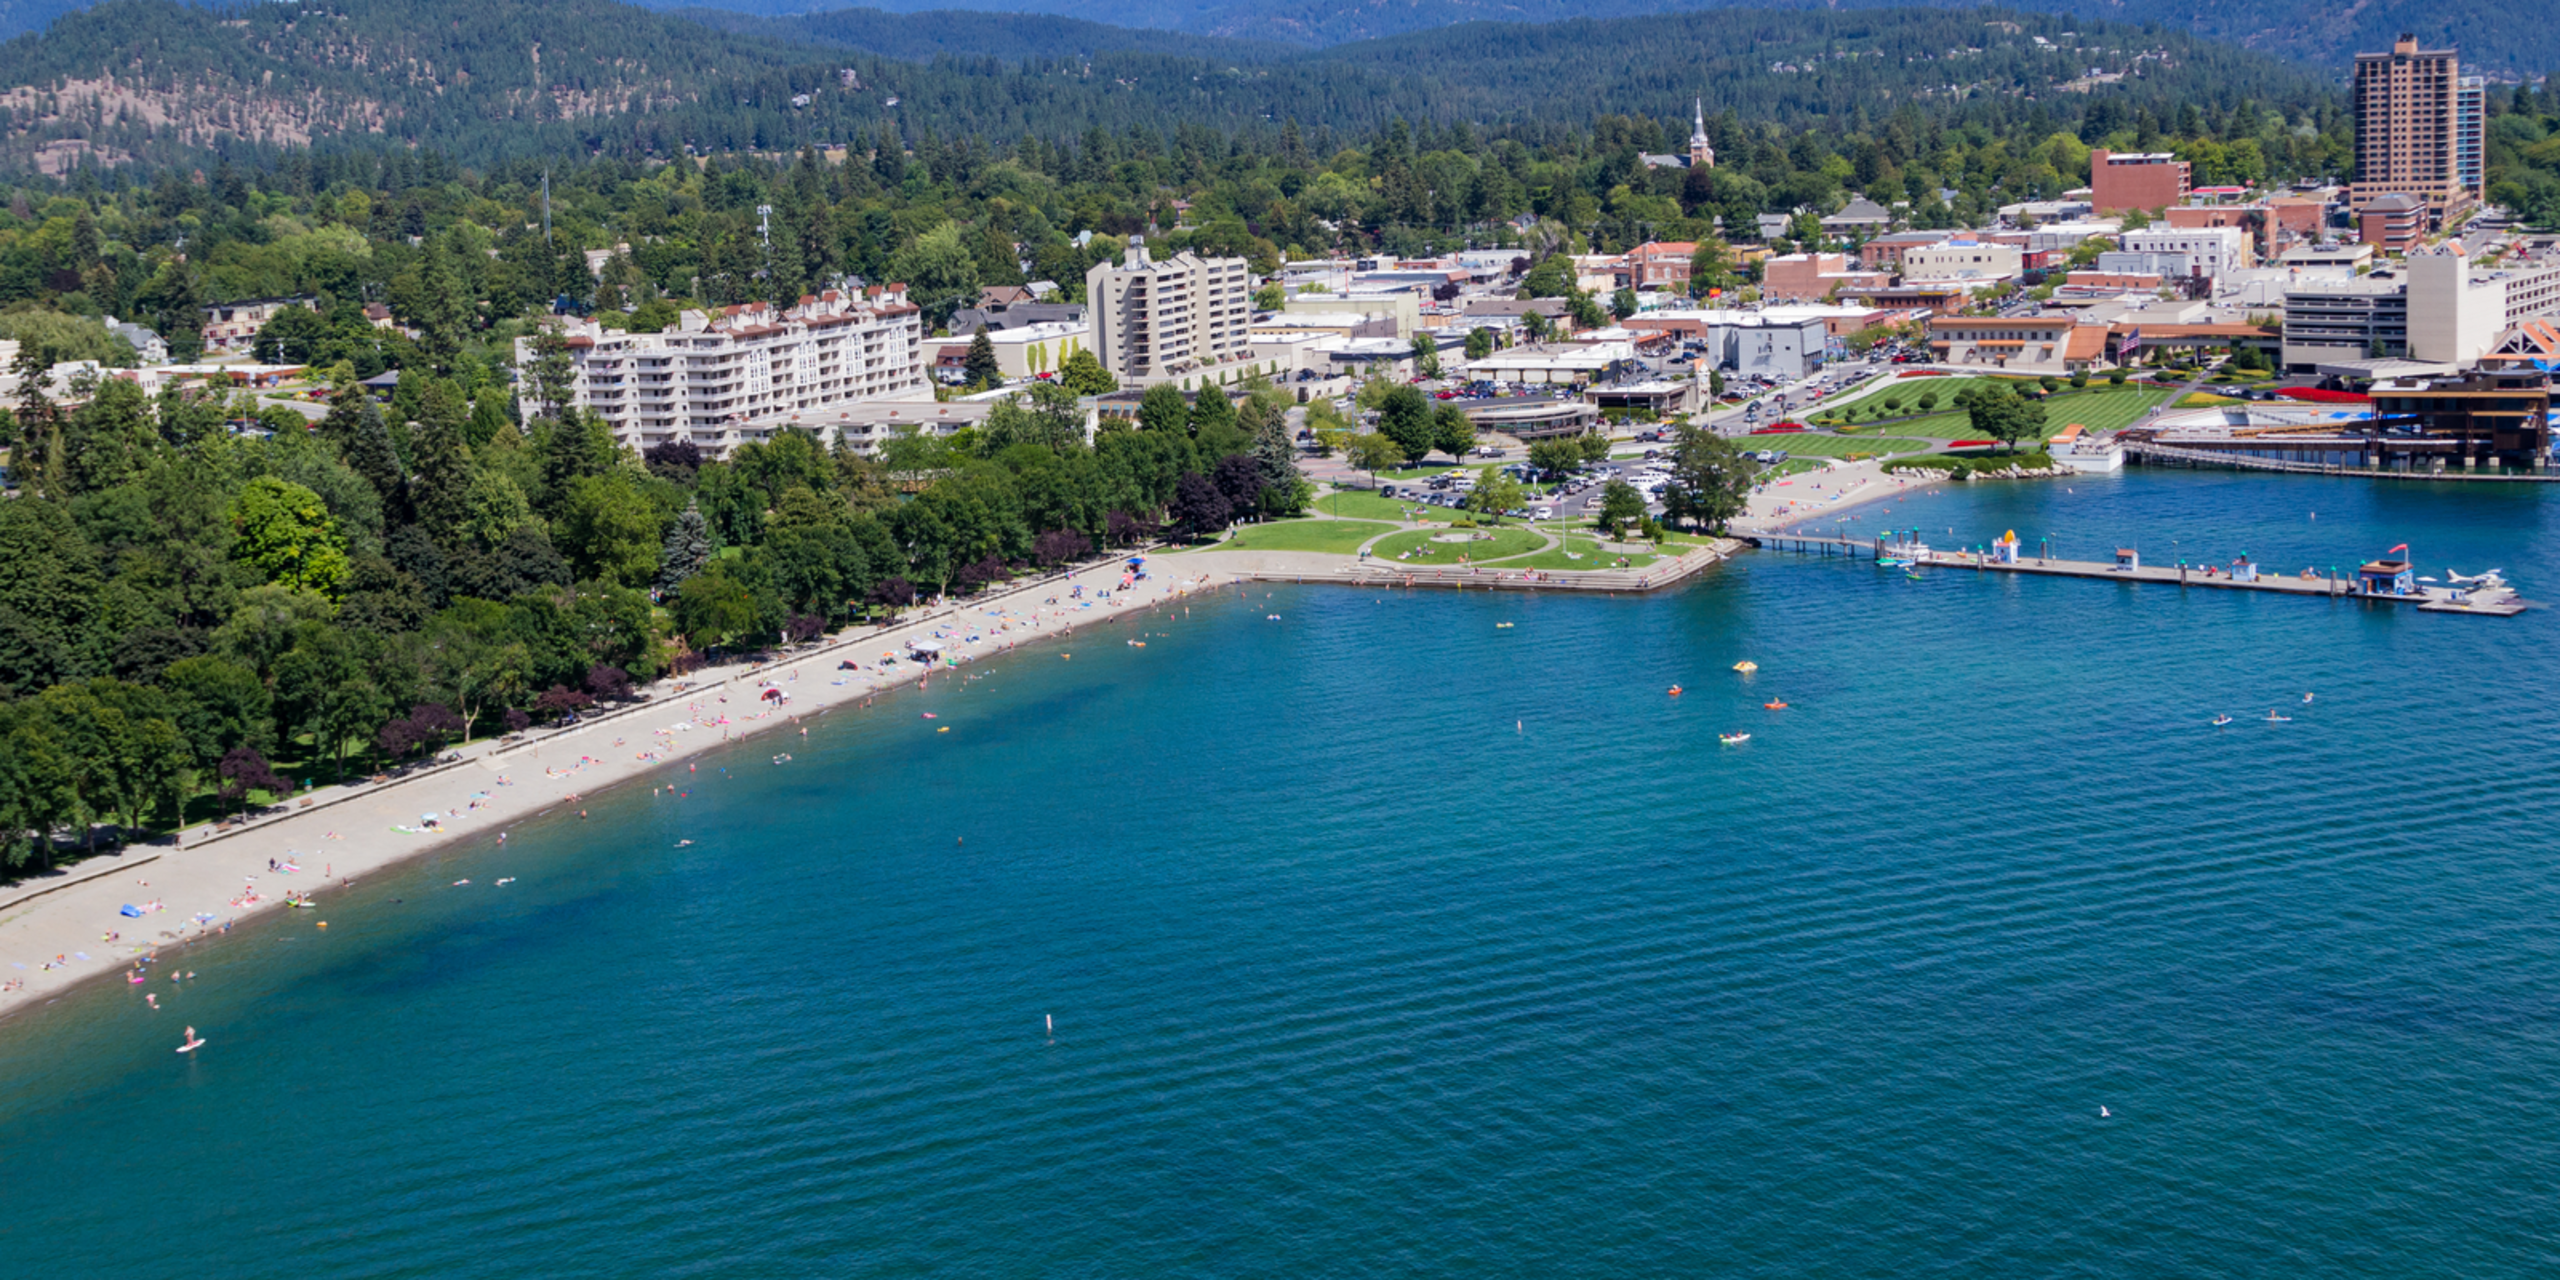 Downtown Coeur d'Alene & City Beach